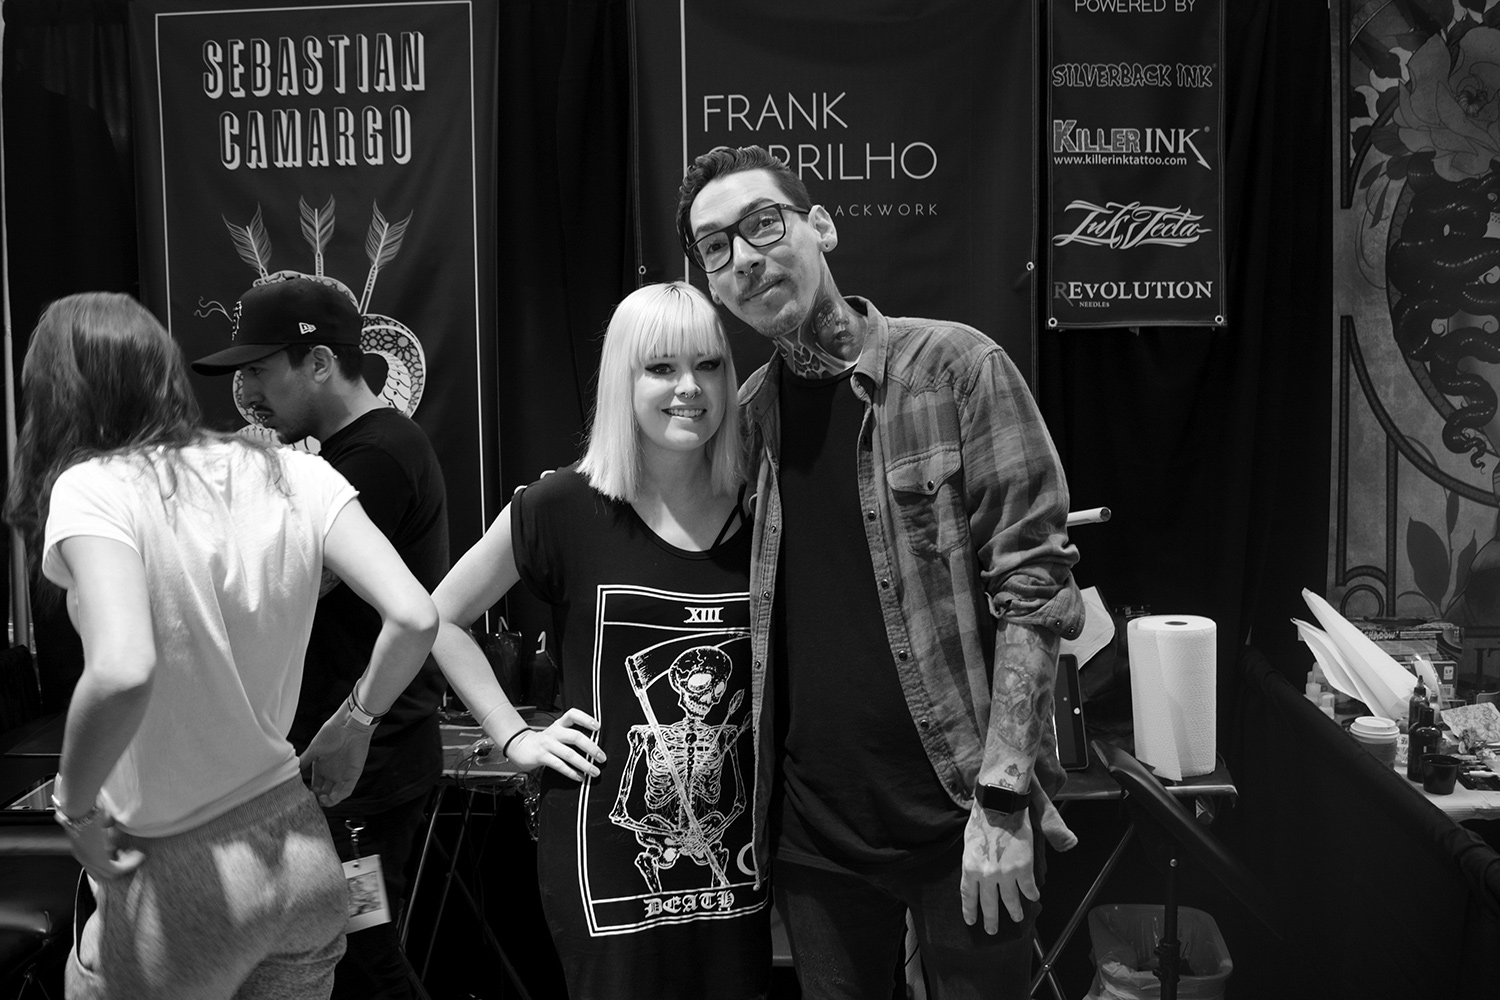 Frank Carrilho, Art Tattoo Montreal Show - Frank Carrilho and Hayley Evans